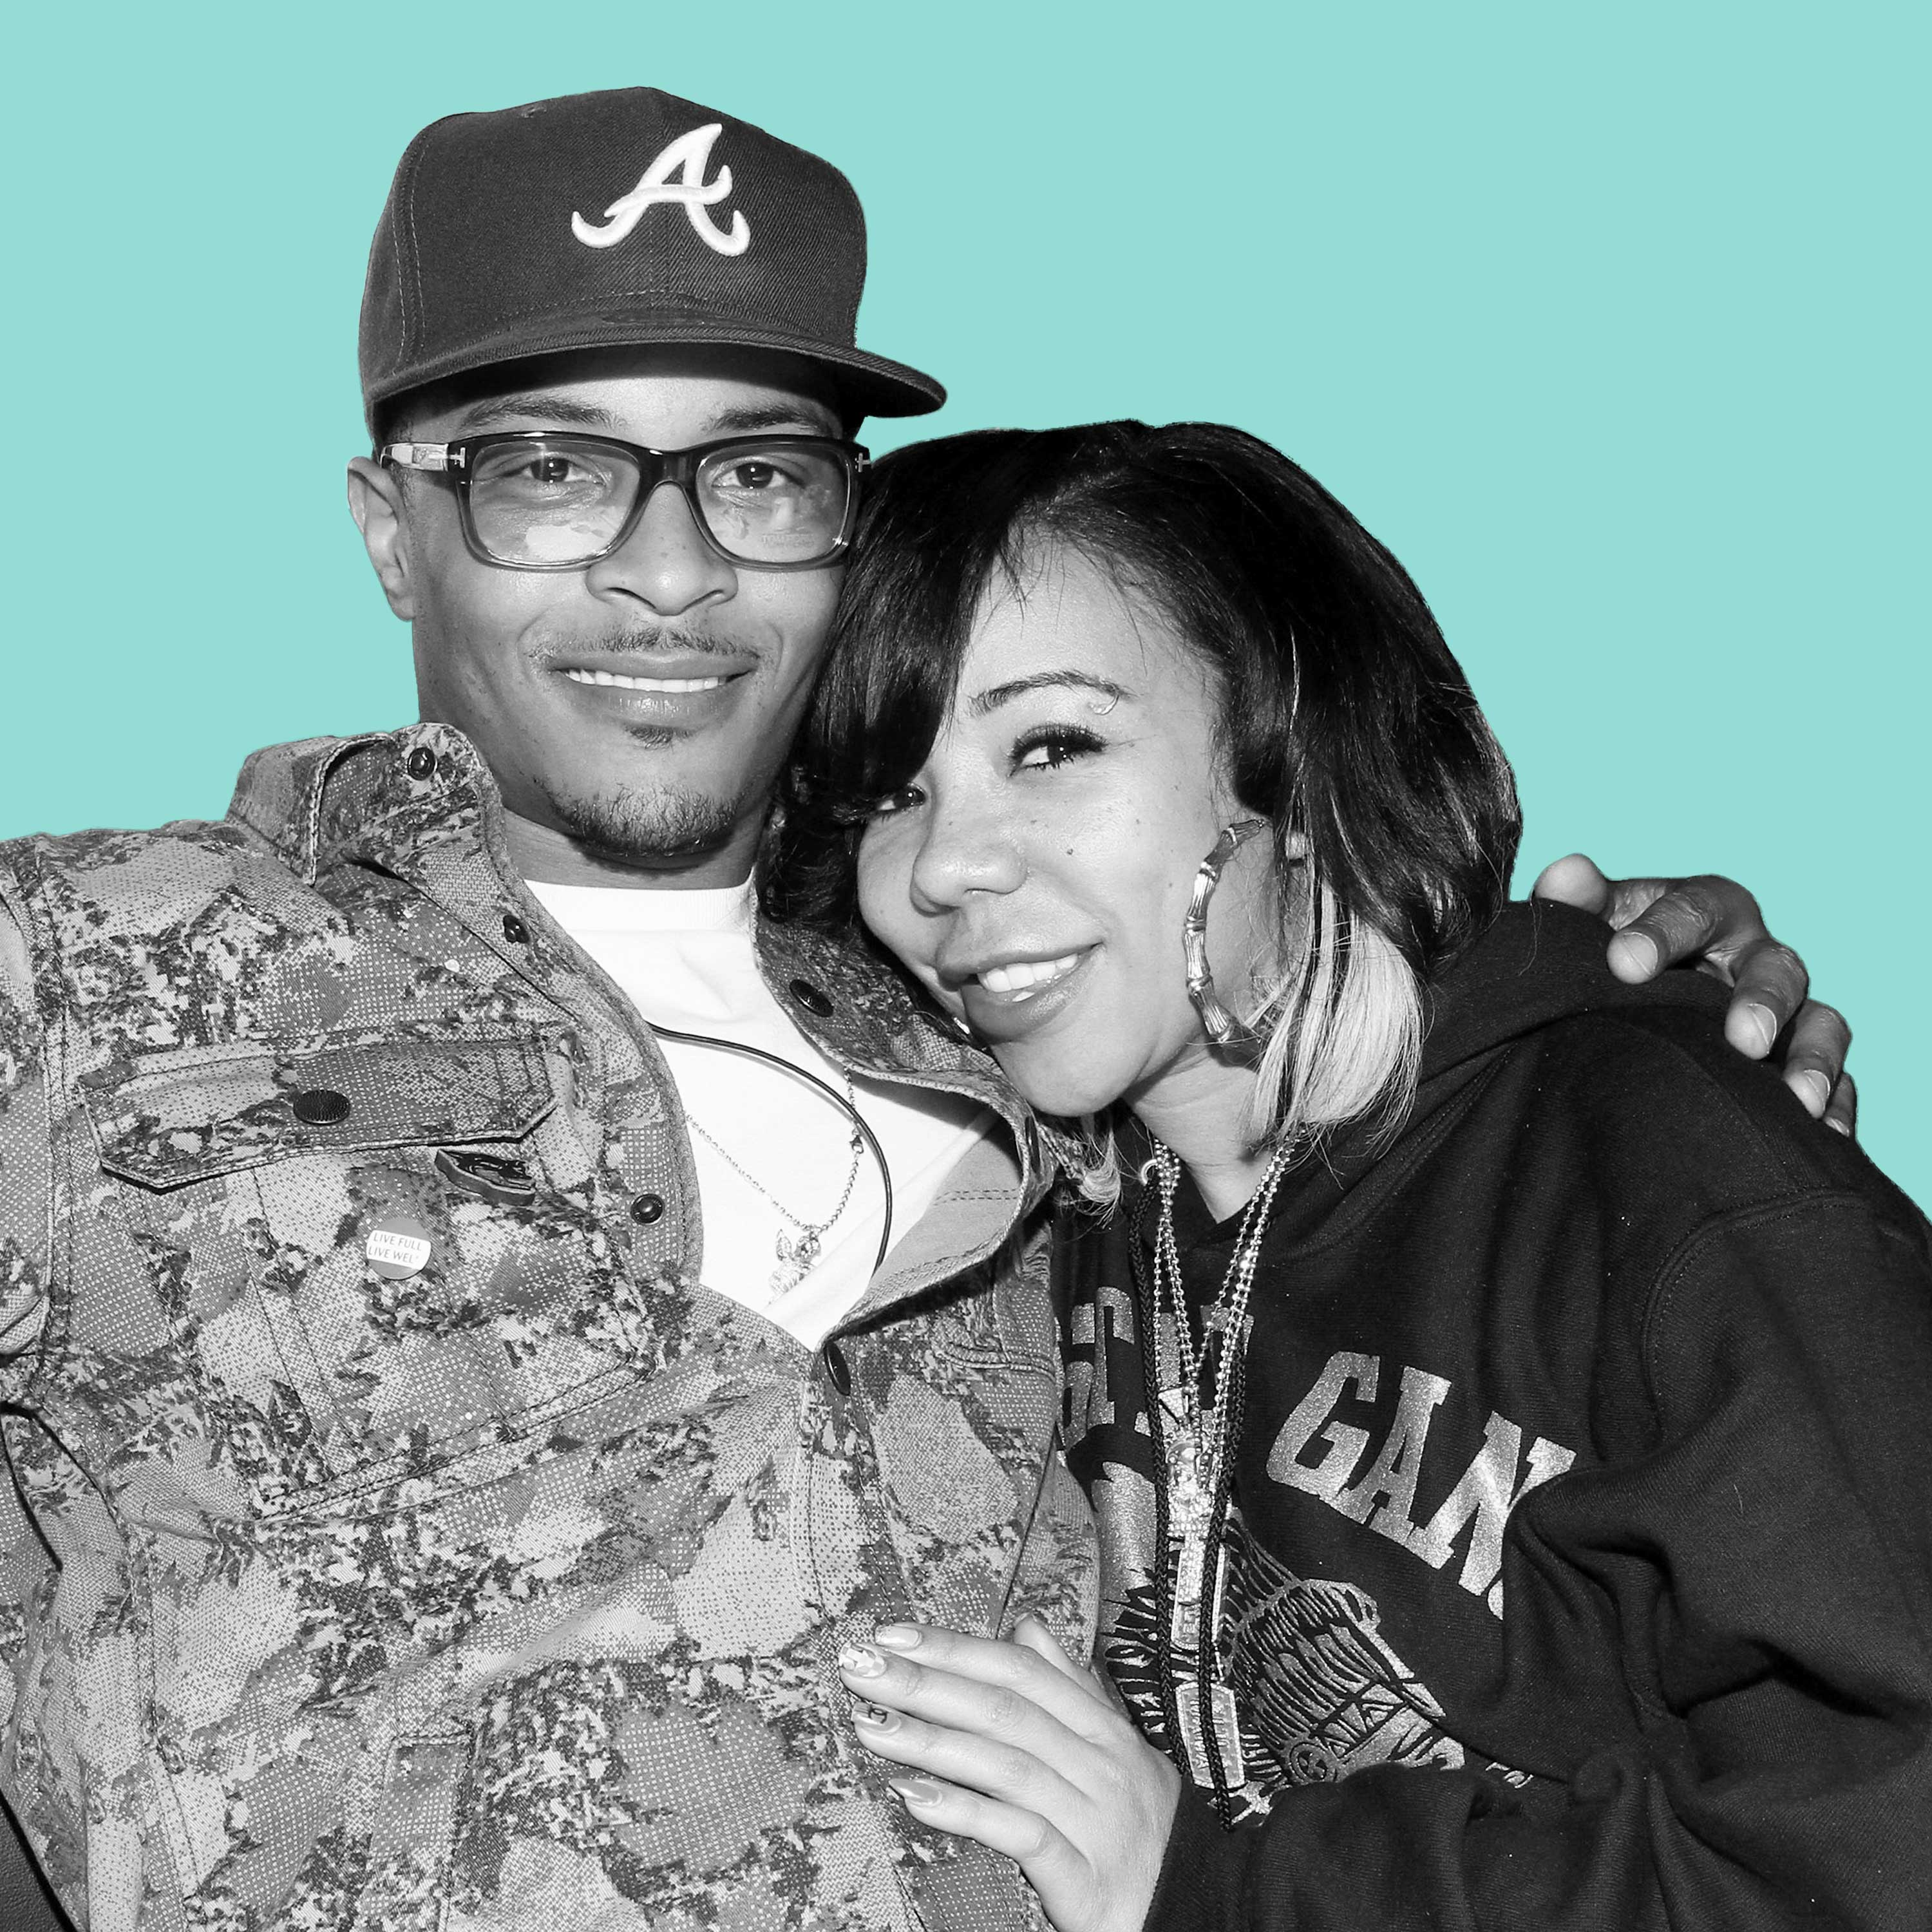 Tiny Admits She And Husband T.I. Are In A Good Place Now and Going On Tour With Xscape Made Her Stronger